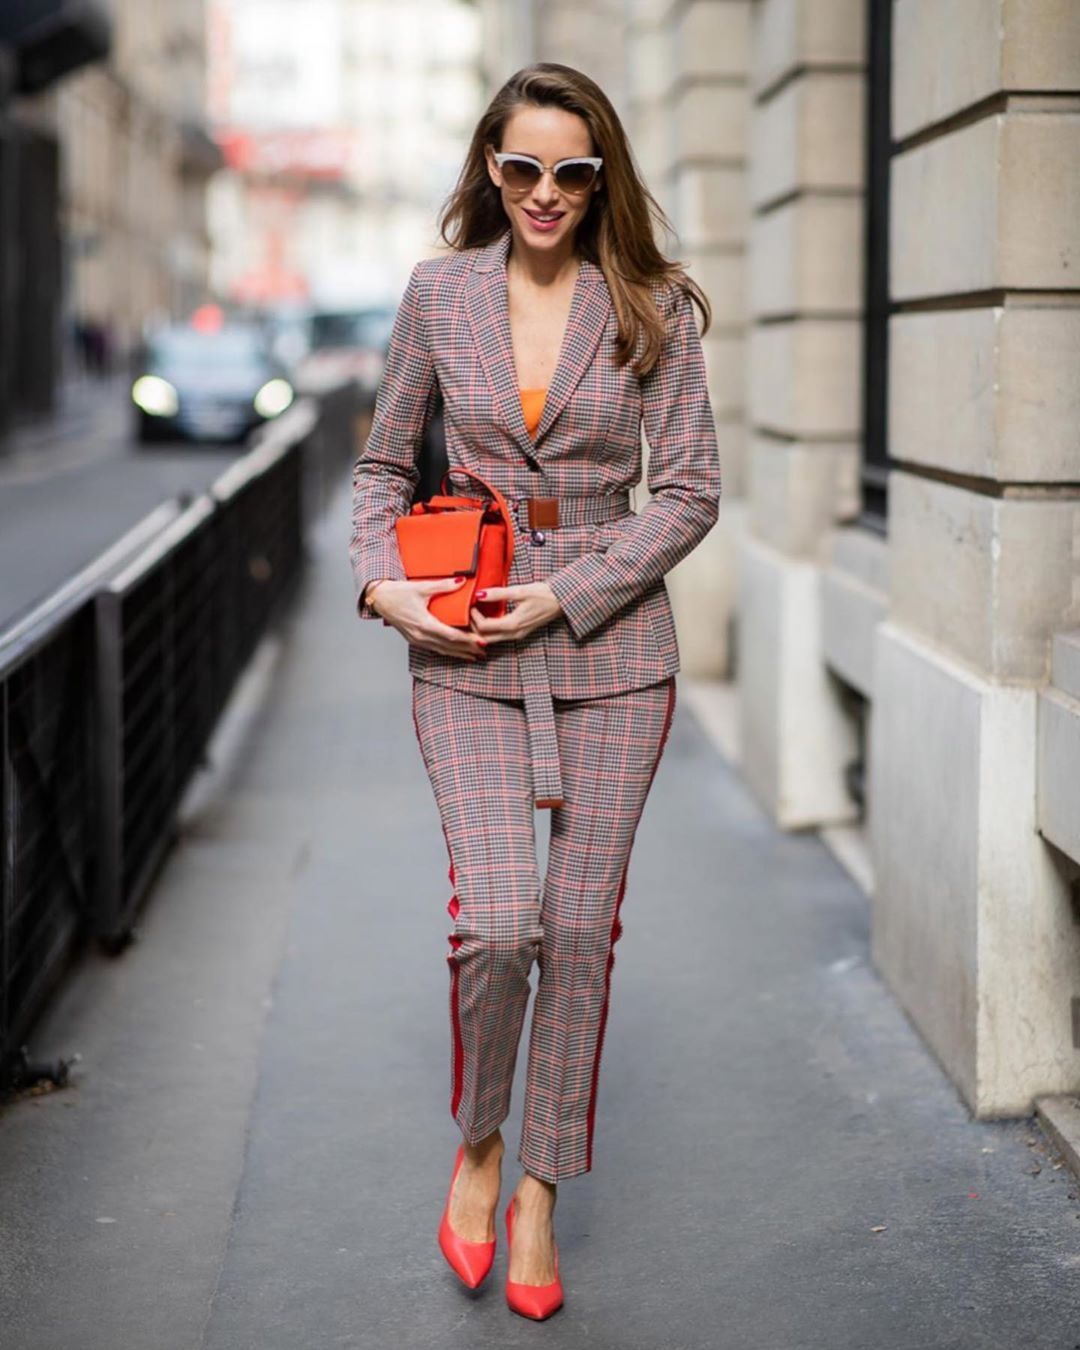 Alexandra Lapp matching corporate checkered set